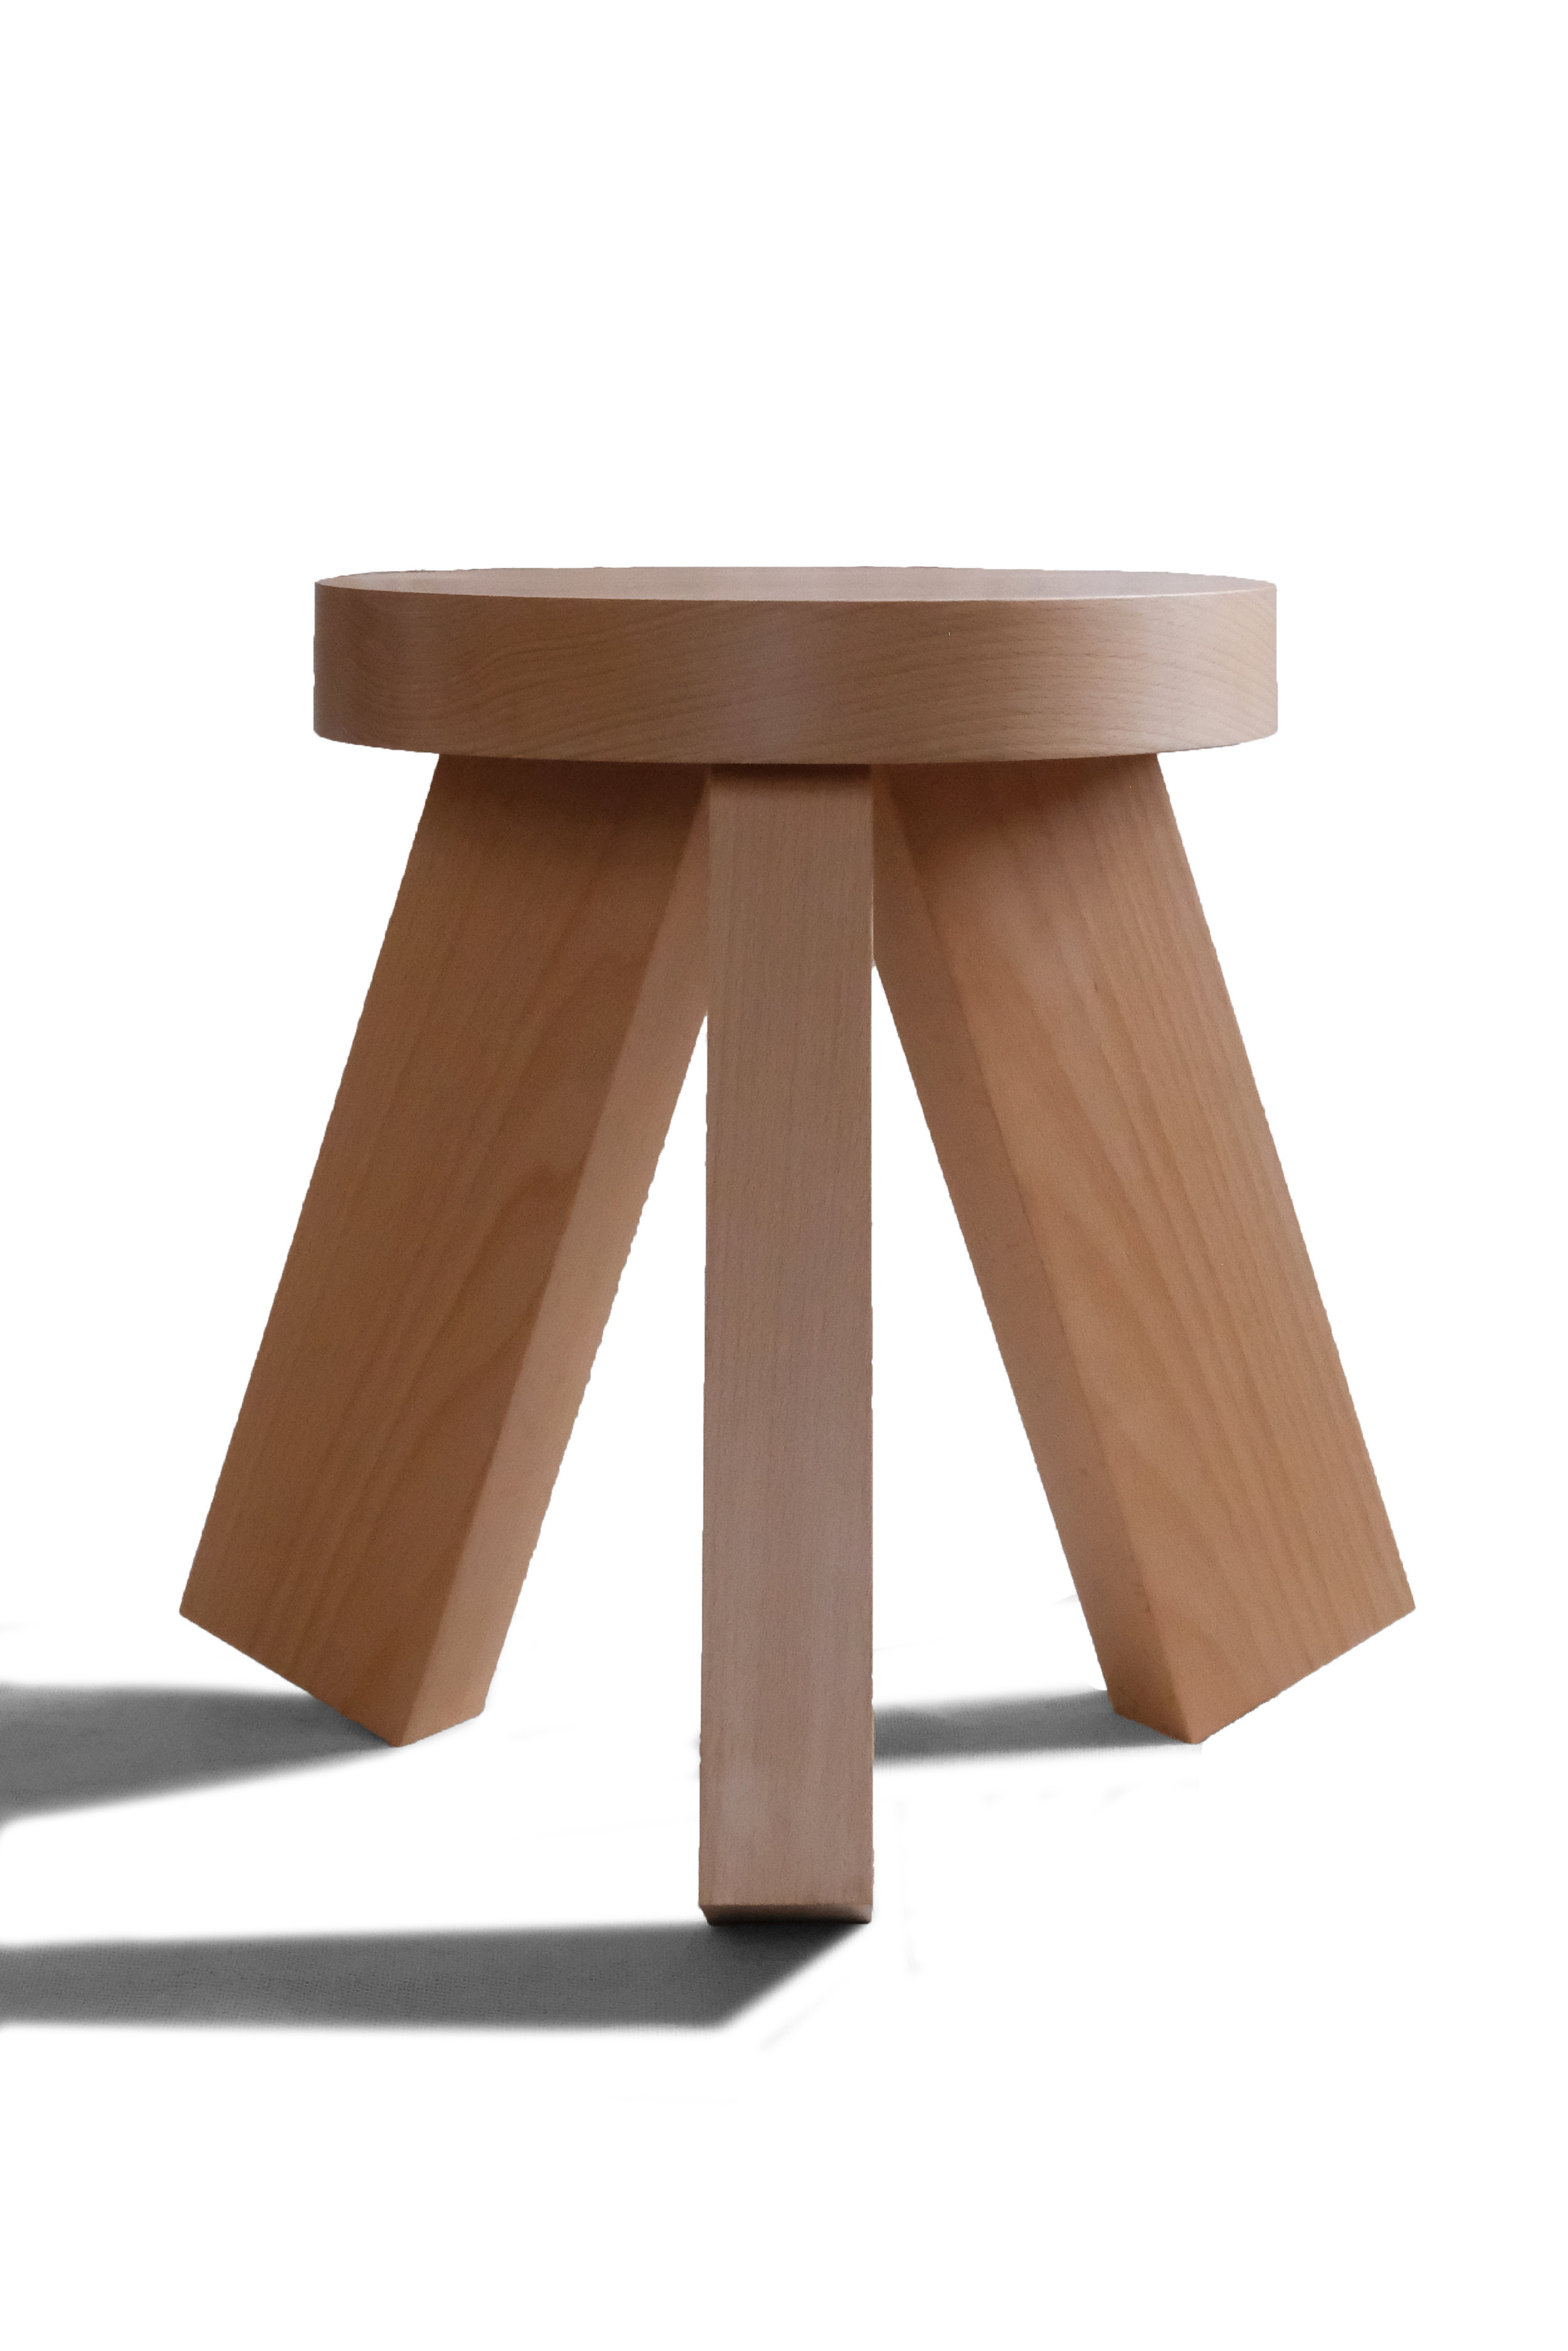 Primitive Forms  |  White Stool  | Beech Wood | © Phat Design